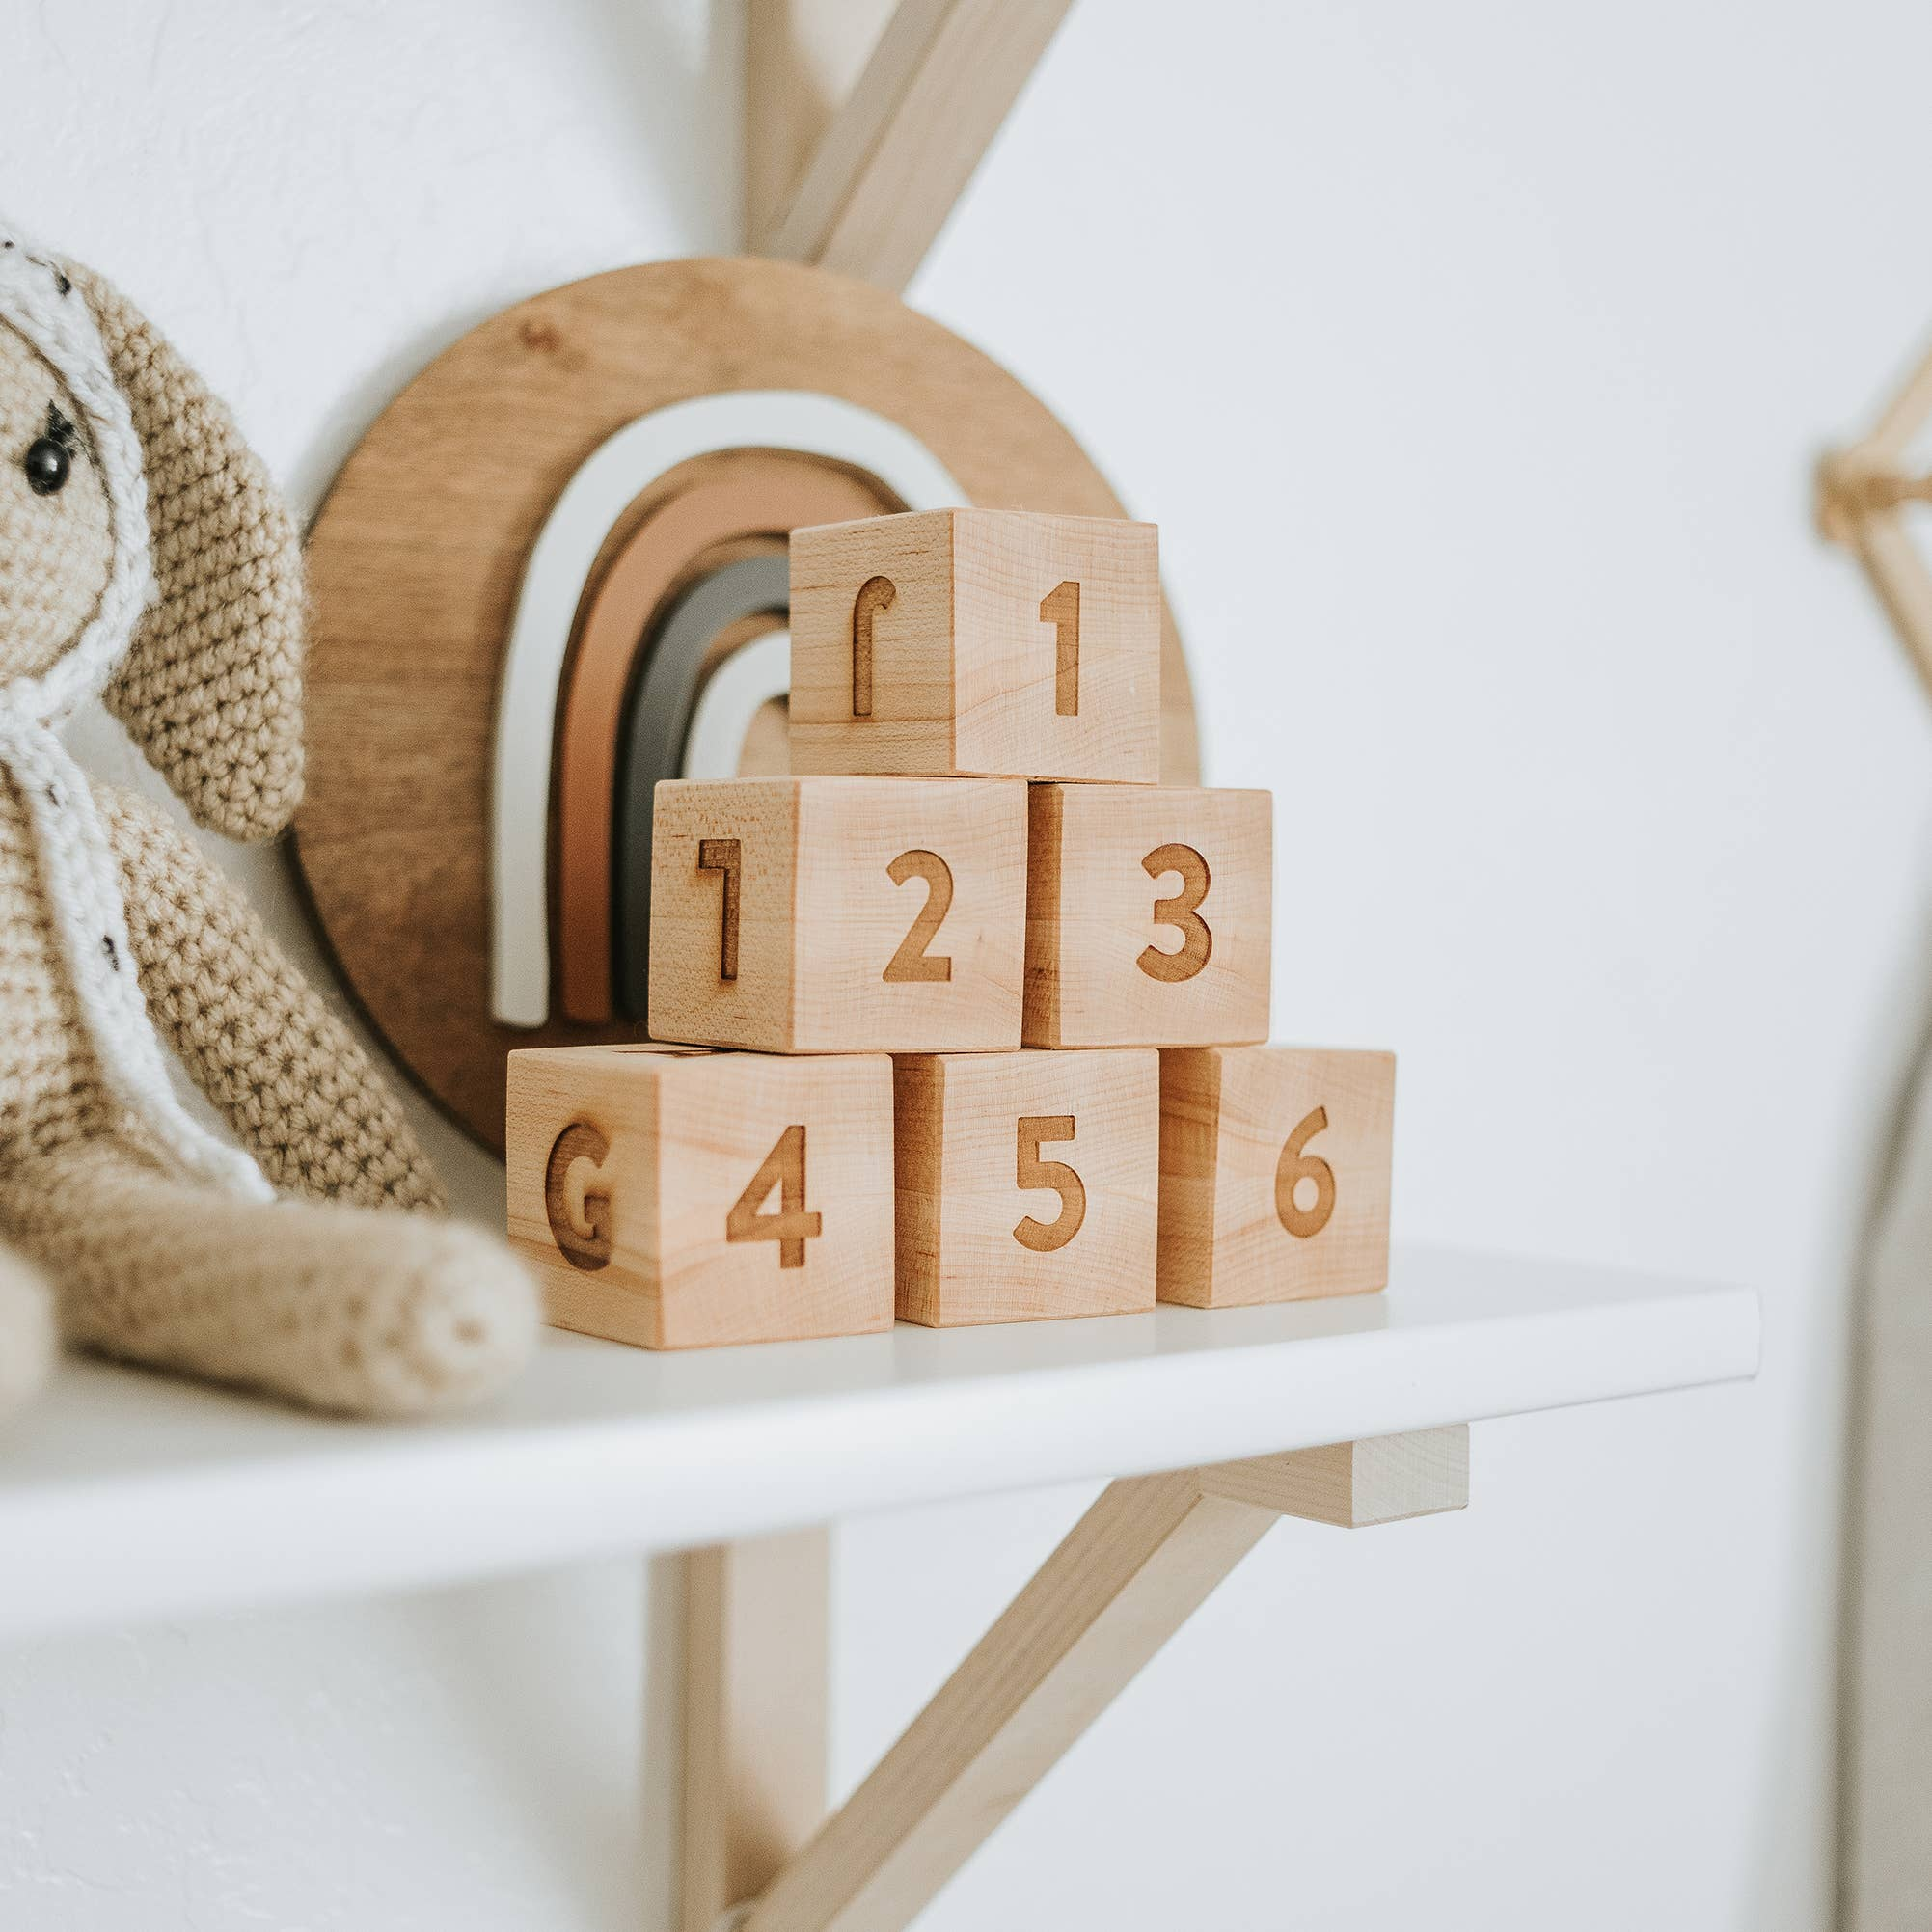 Handmade Wooden Alphabet and Numeral Blocks